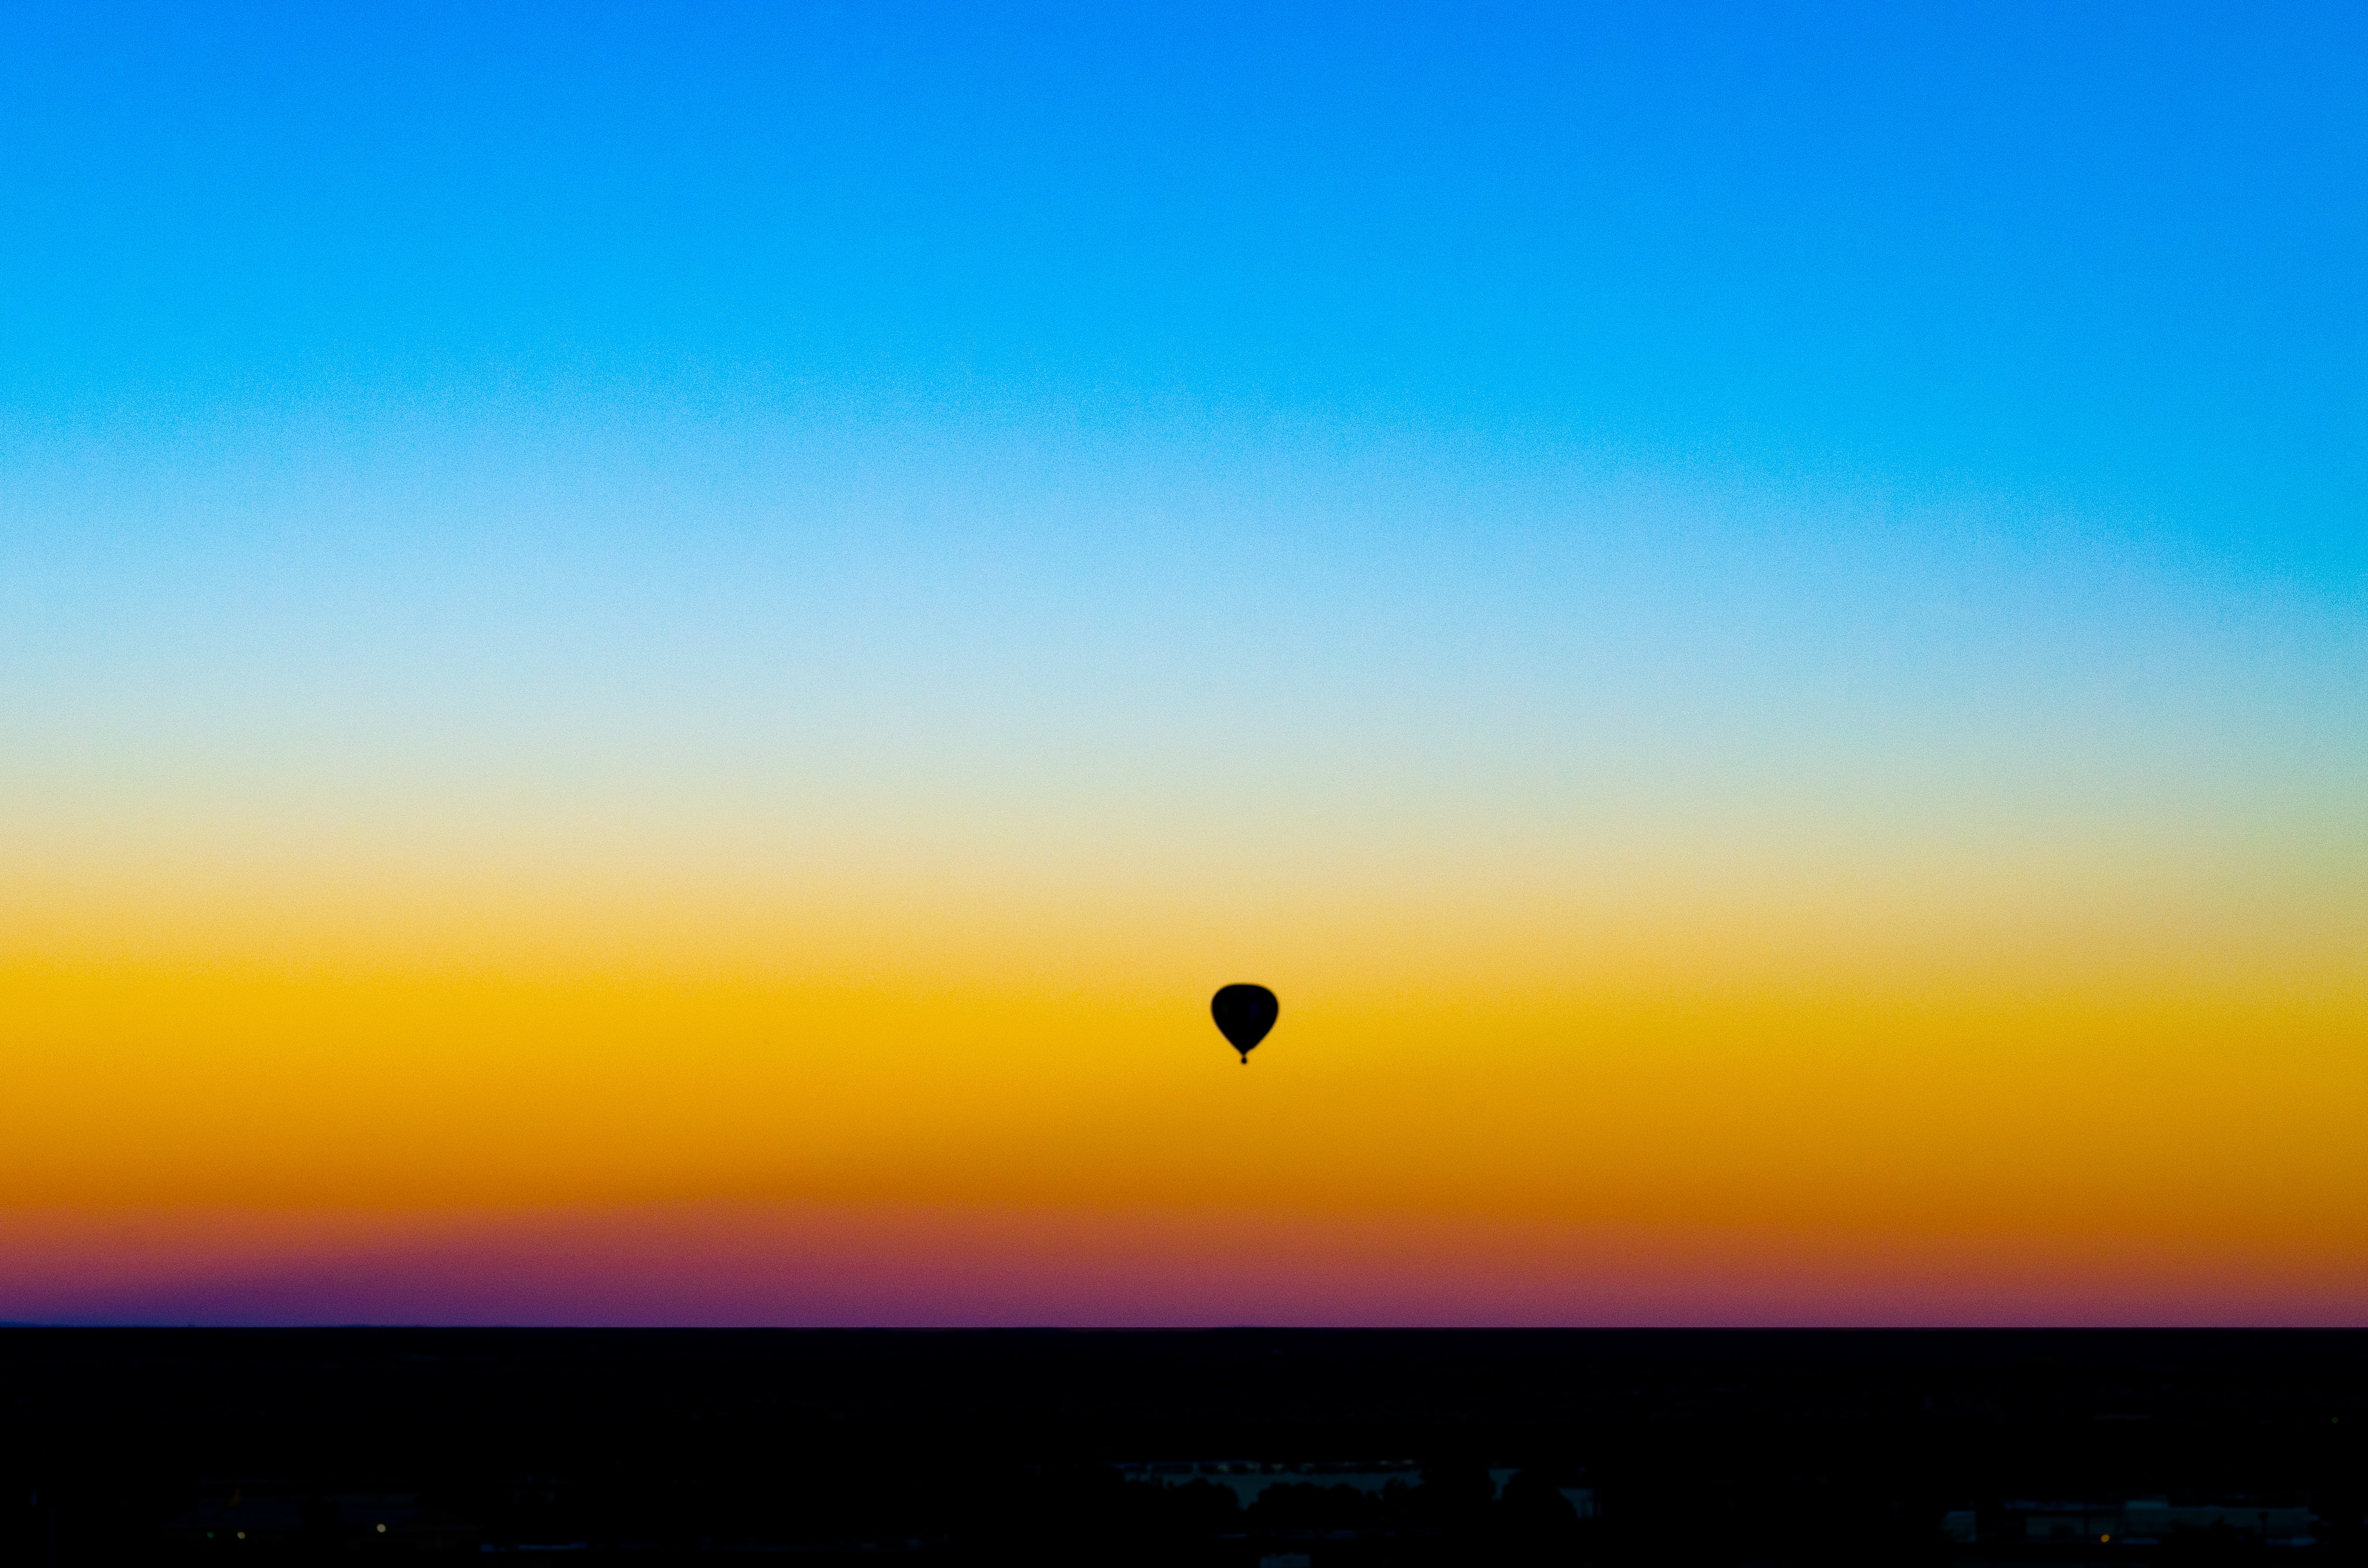 silhouette of hot air balloon under blue sky